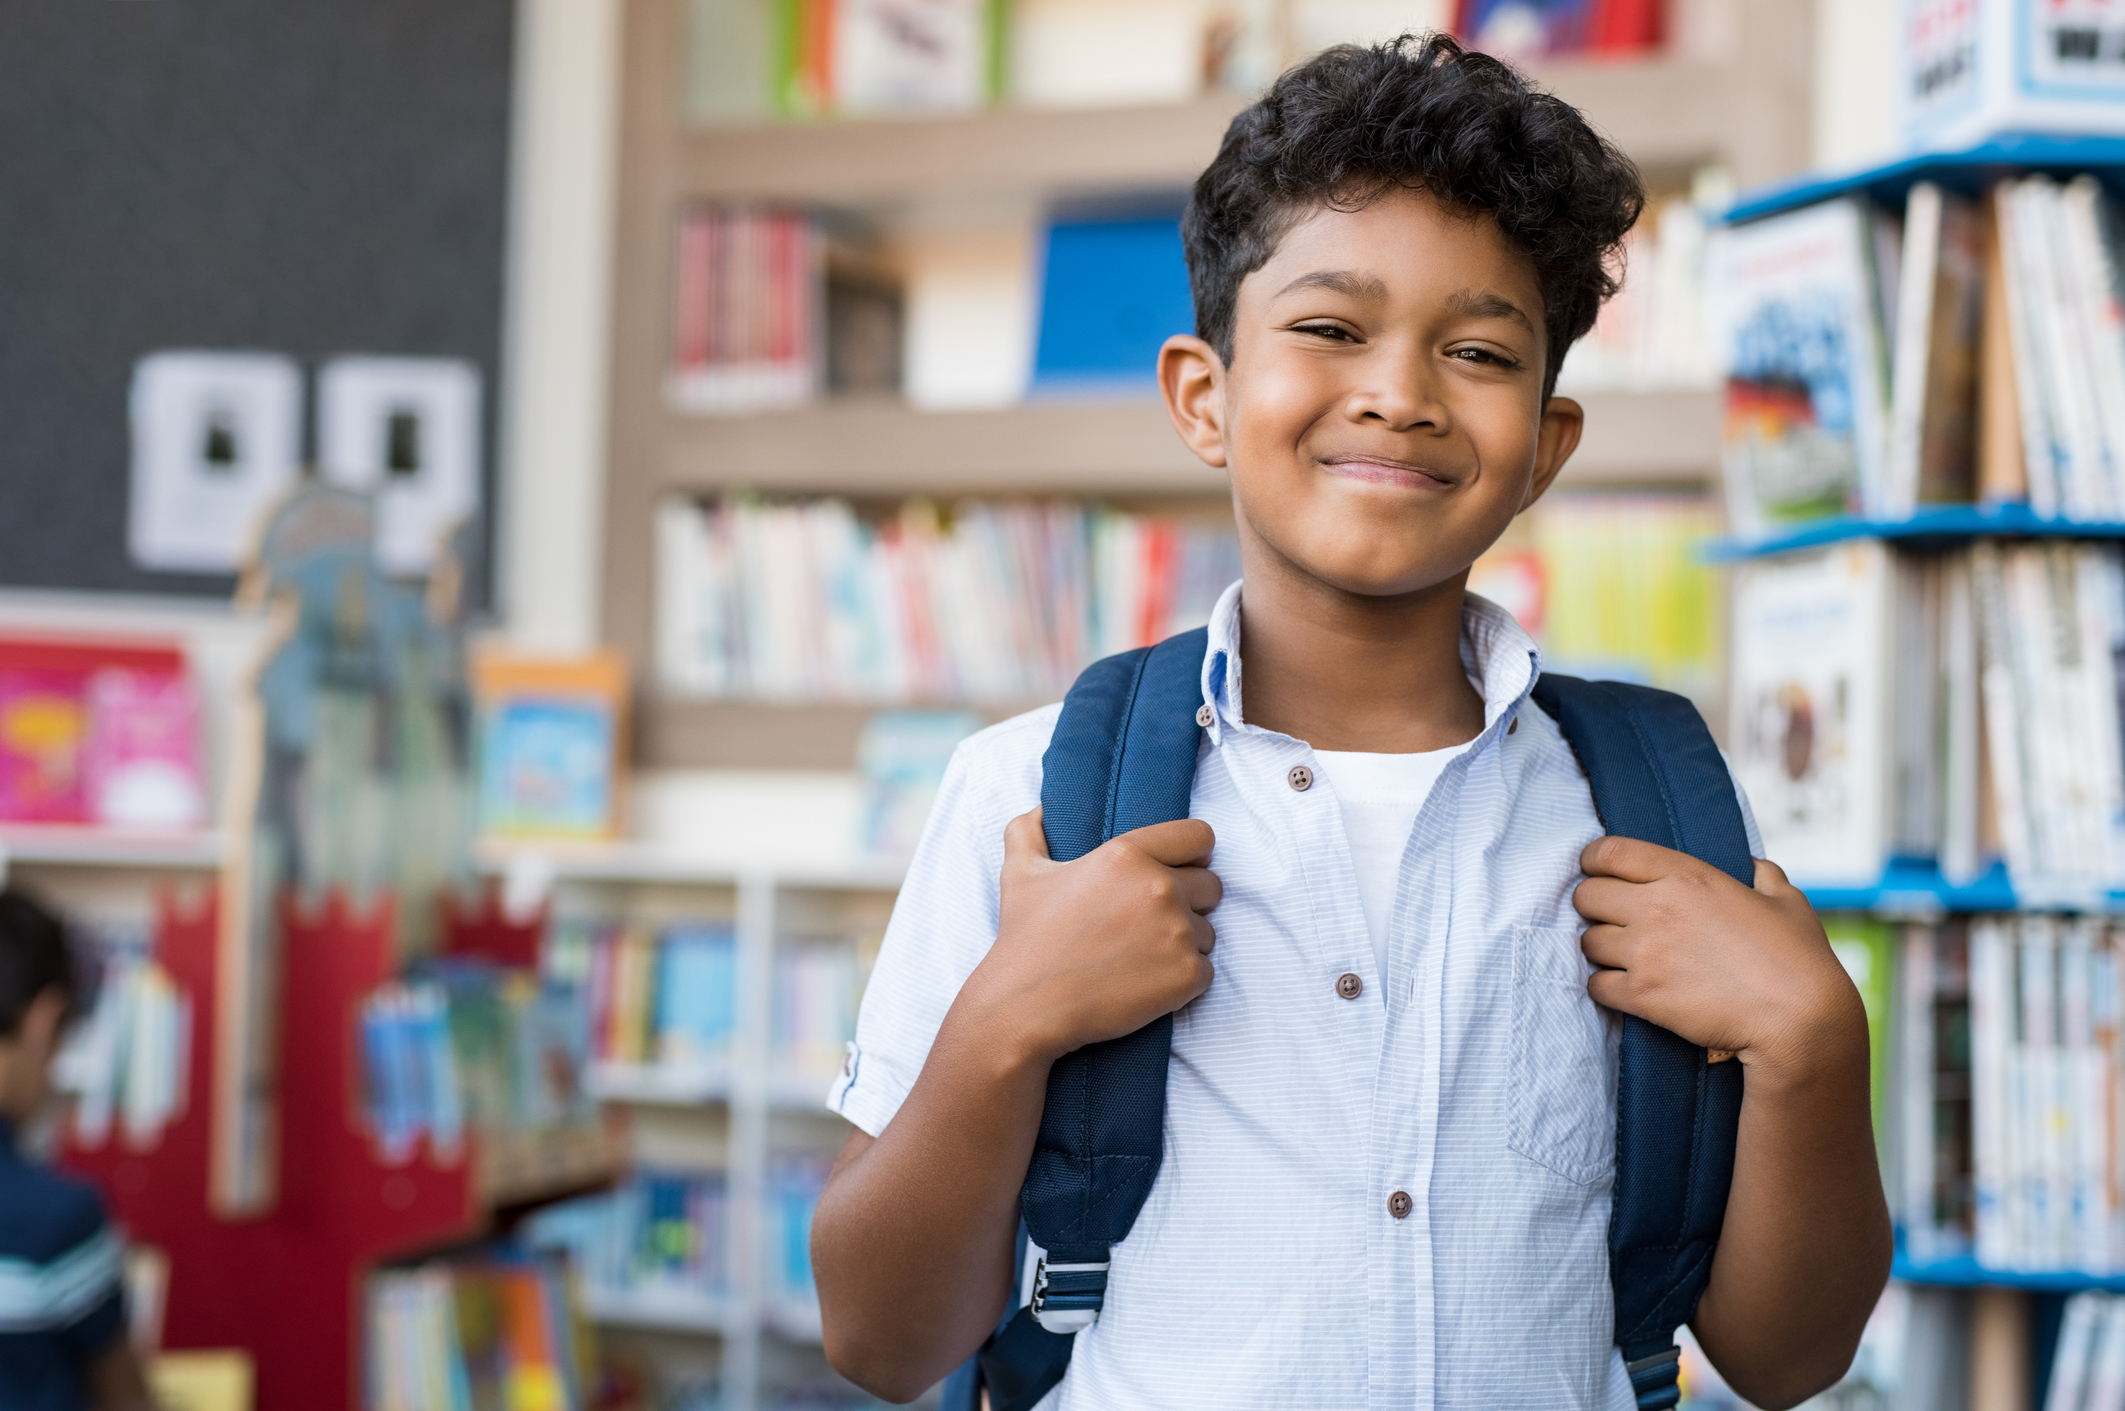 Portrait of smiling Latino boy looking at camera, carrying backpack and standing in library at school.